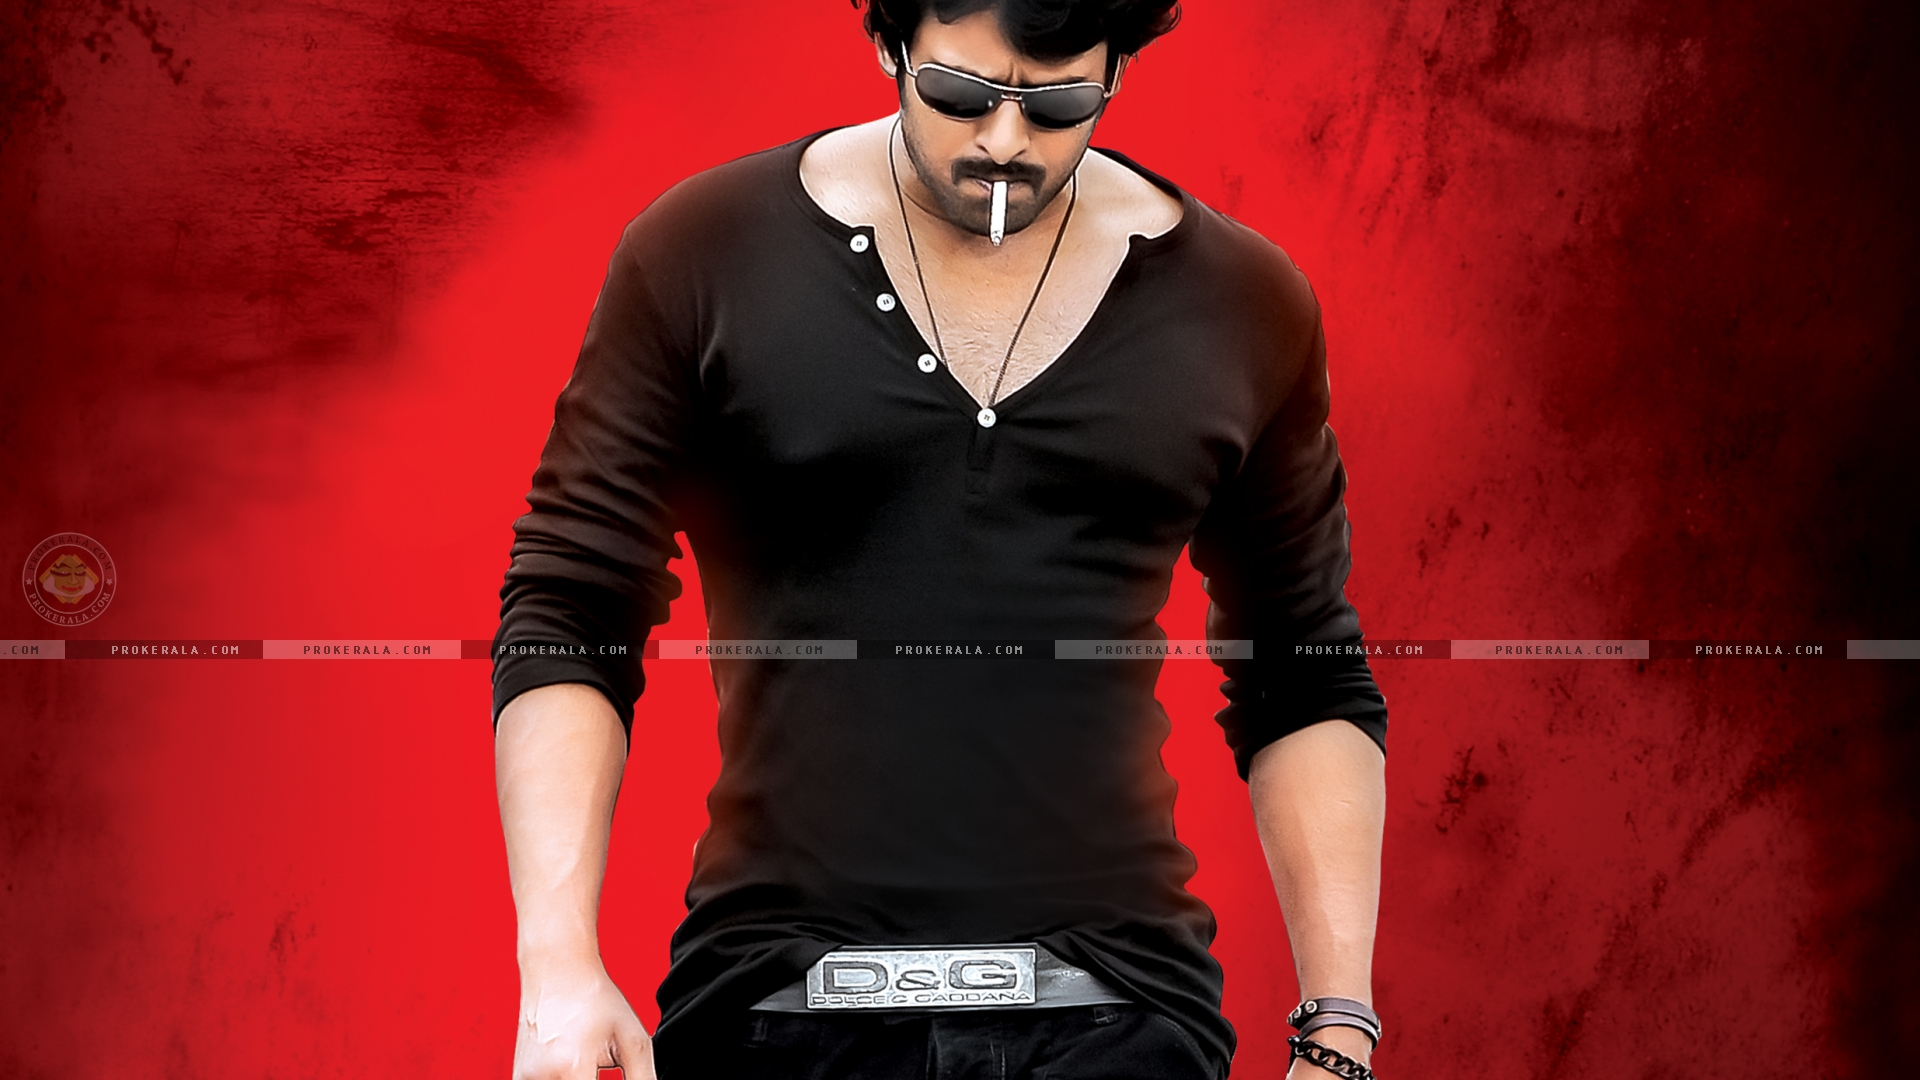 Rebel Movie New Stills: Prabhas Images, HD Photos, Biography & Latest News